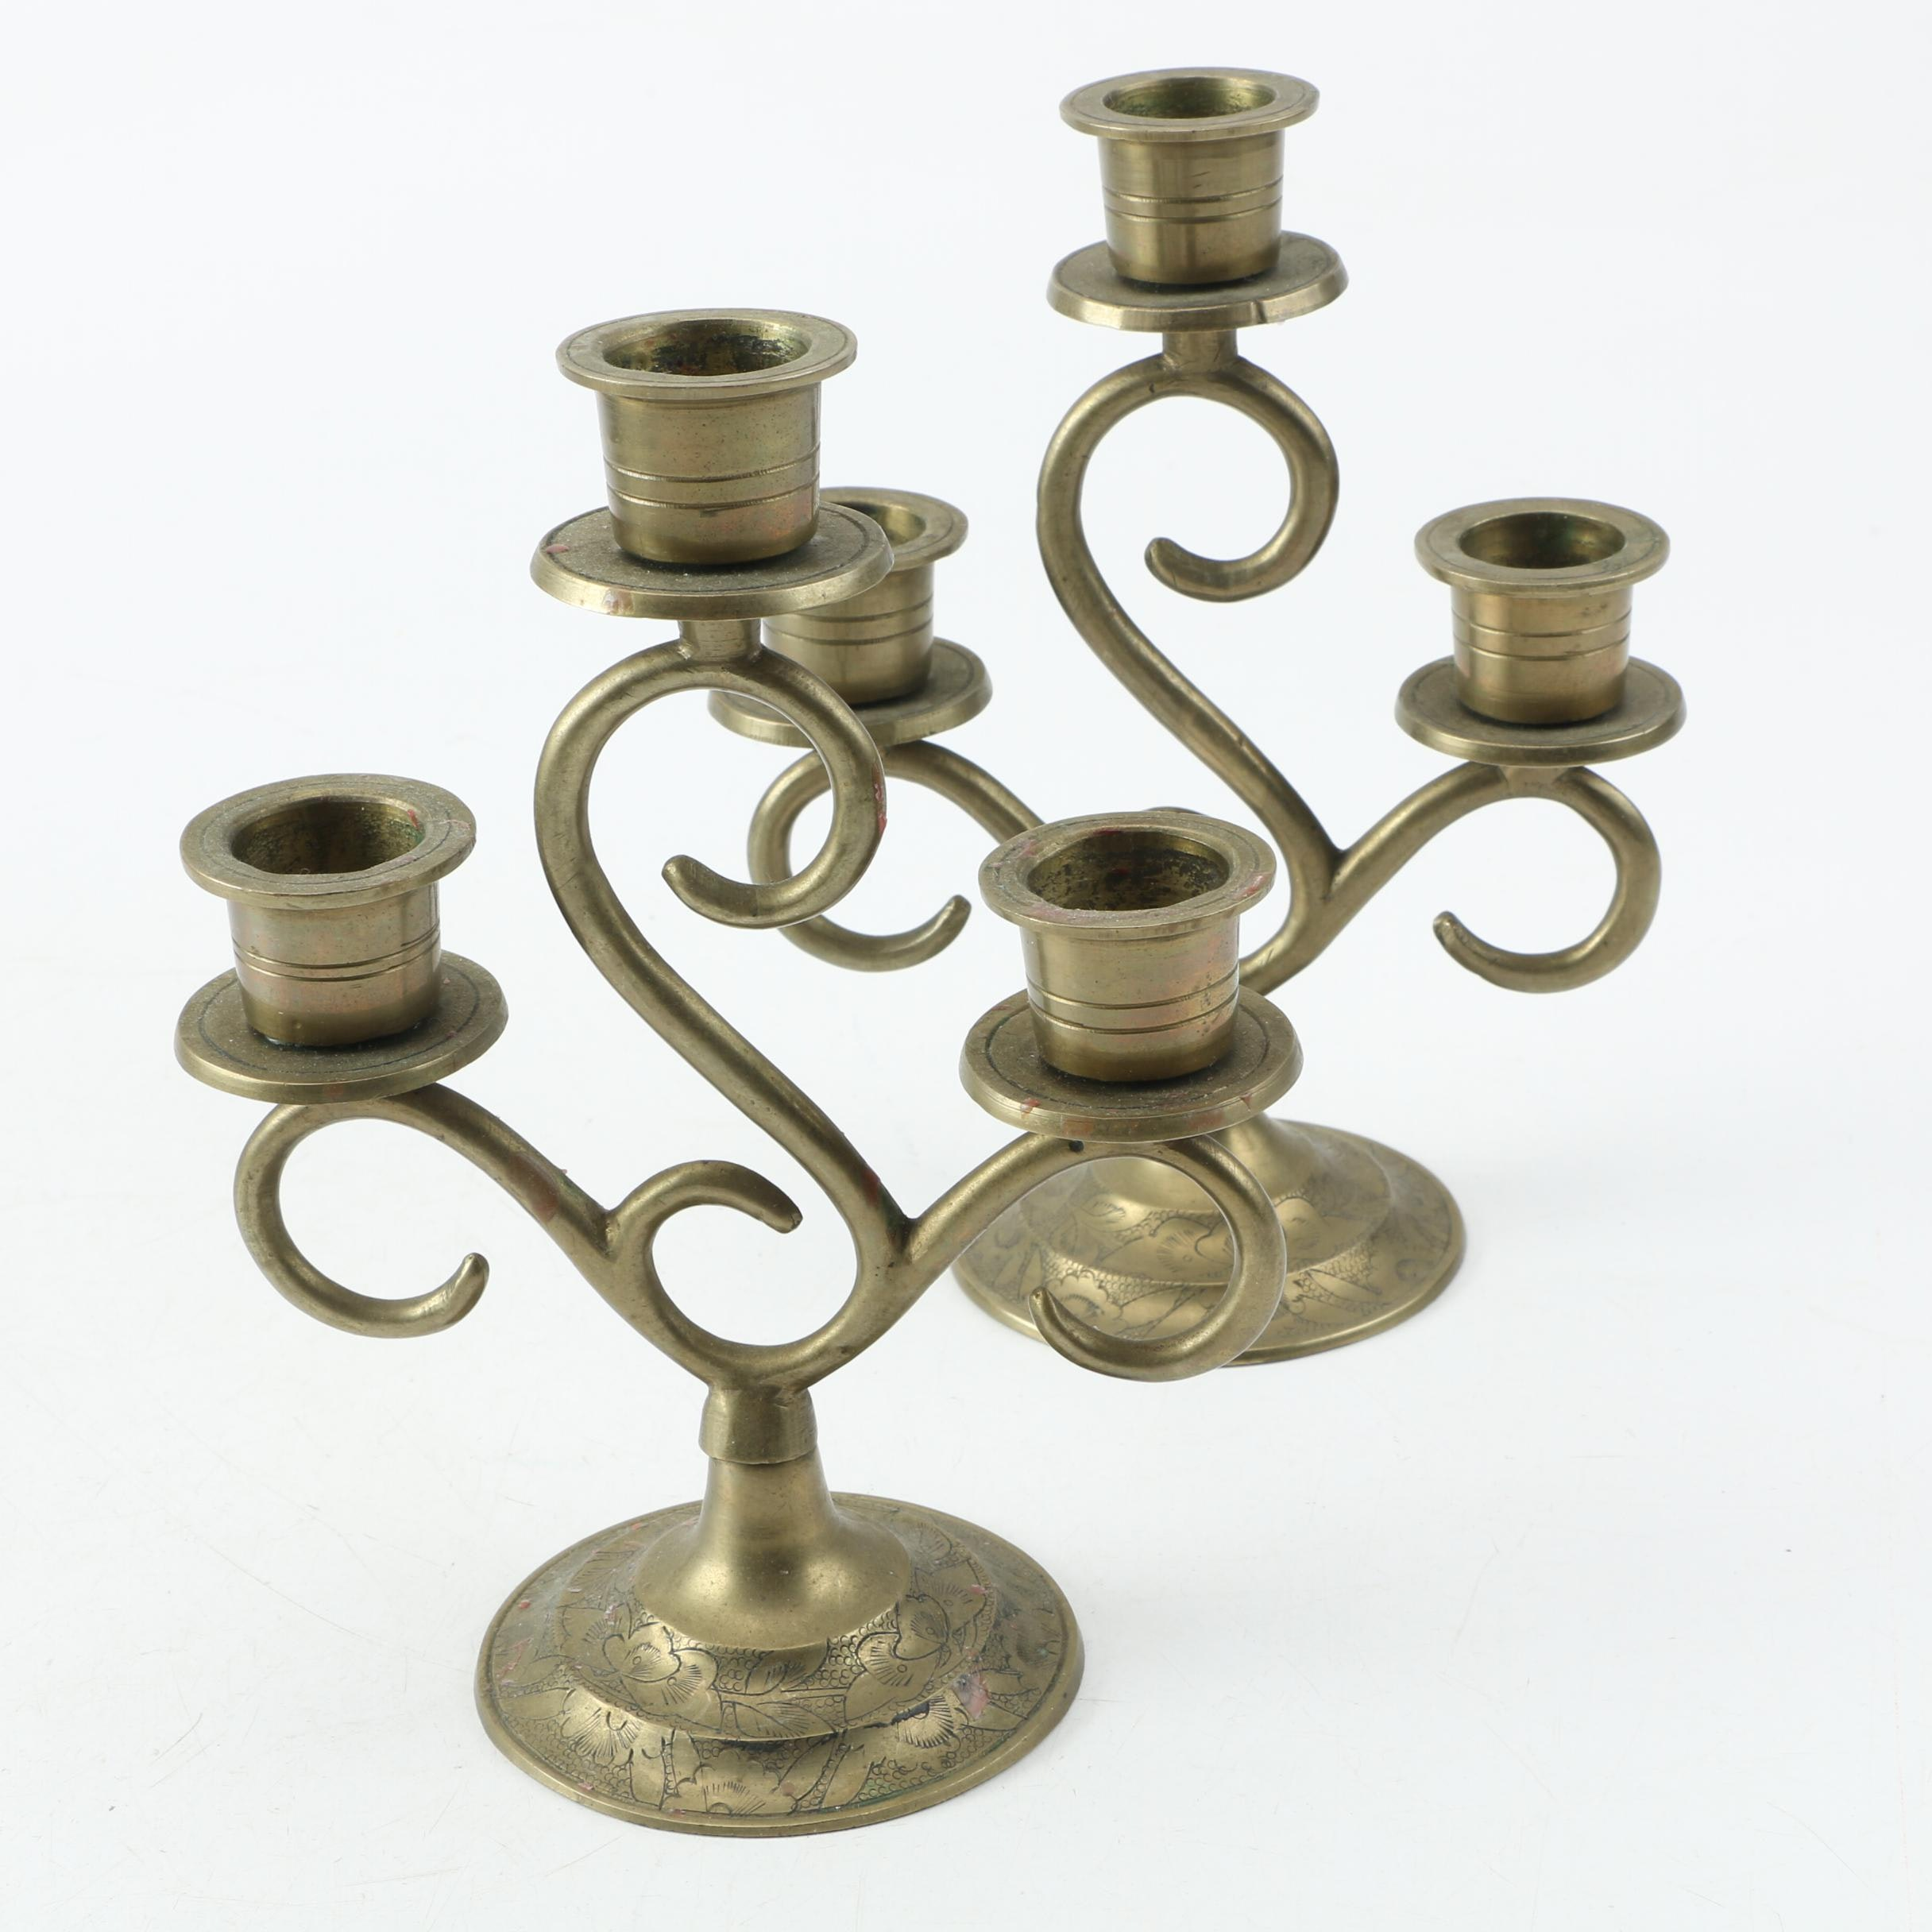 Chinese Brass Candlesticks with Scrolled Arms